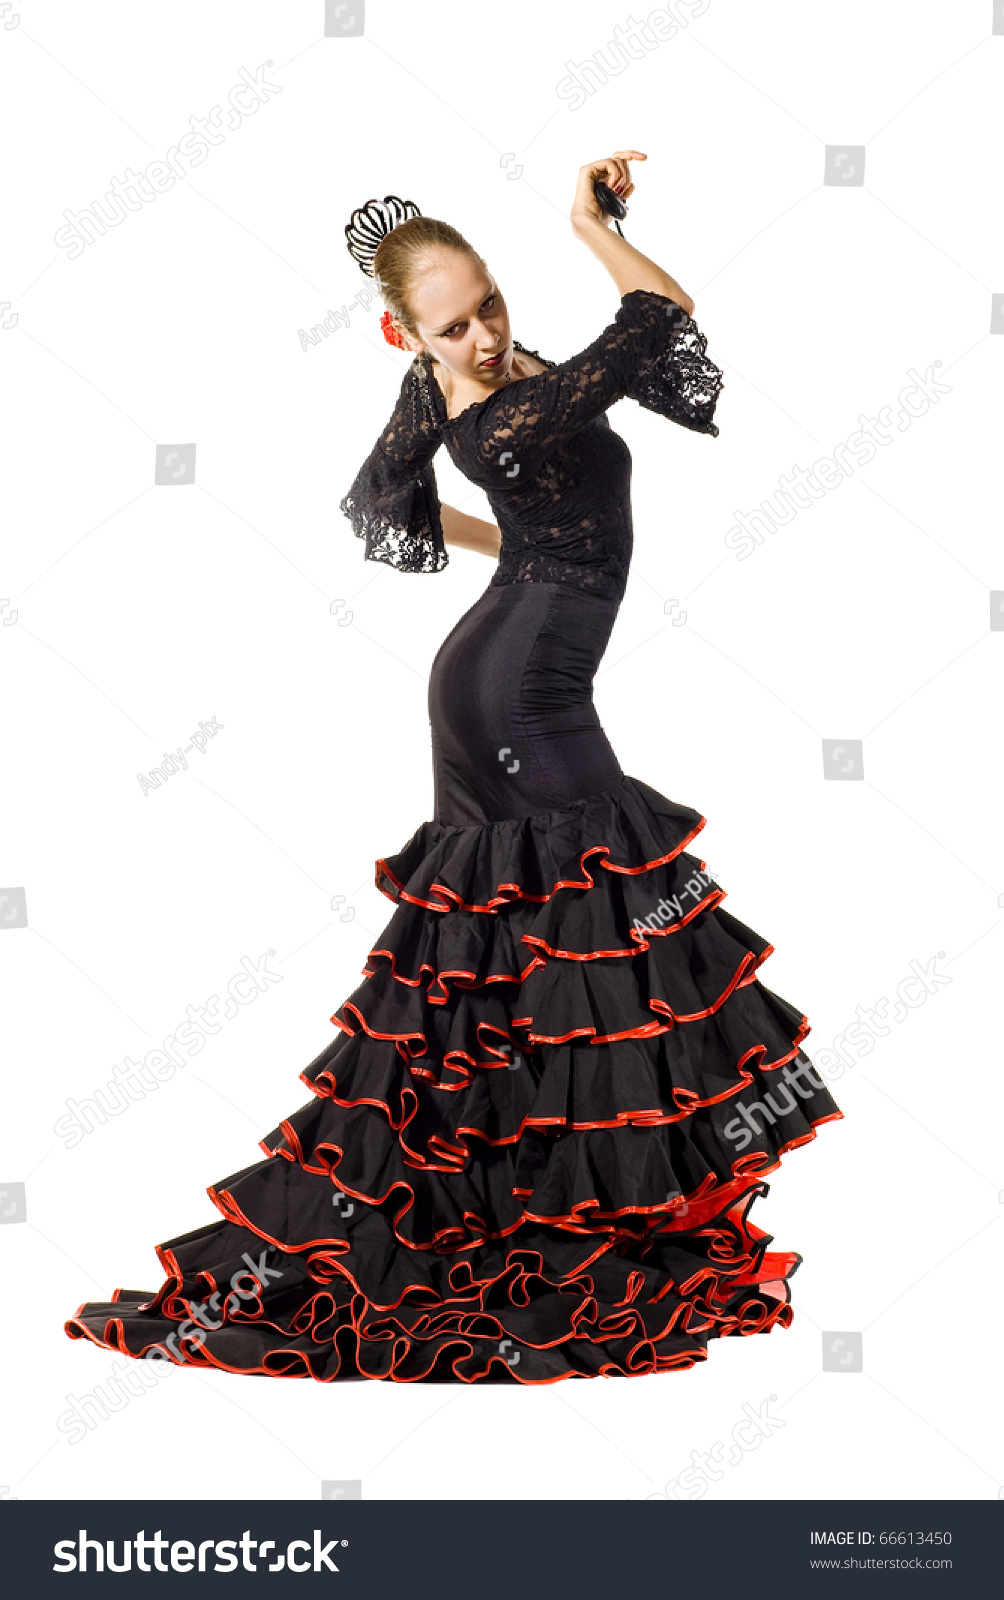 how to say dress in spanish